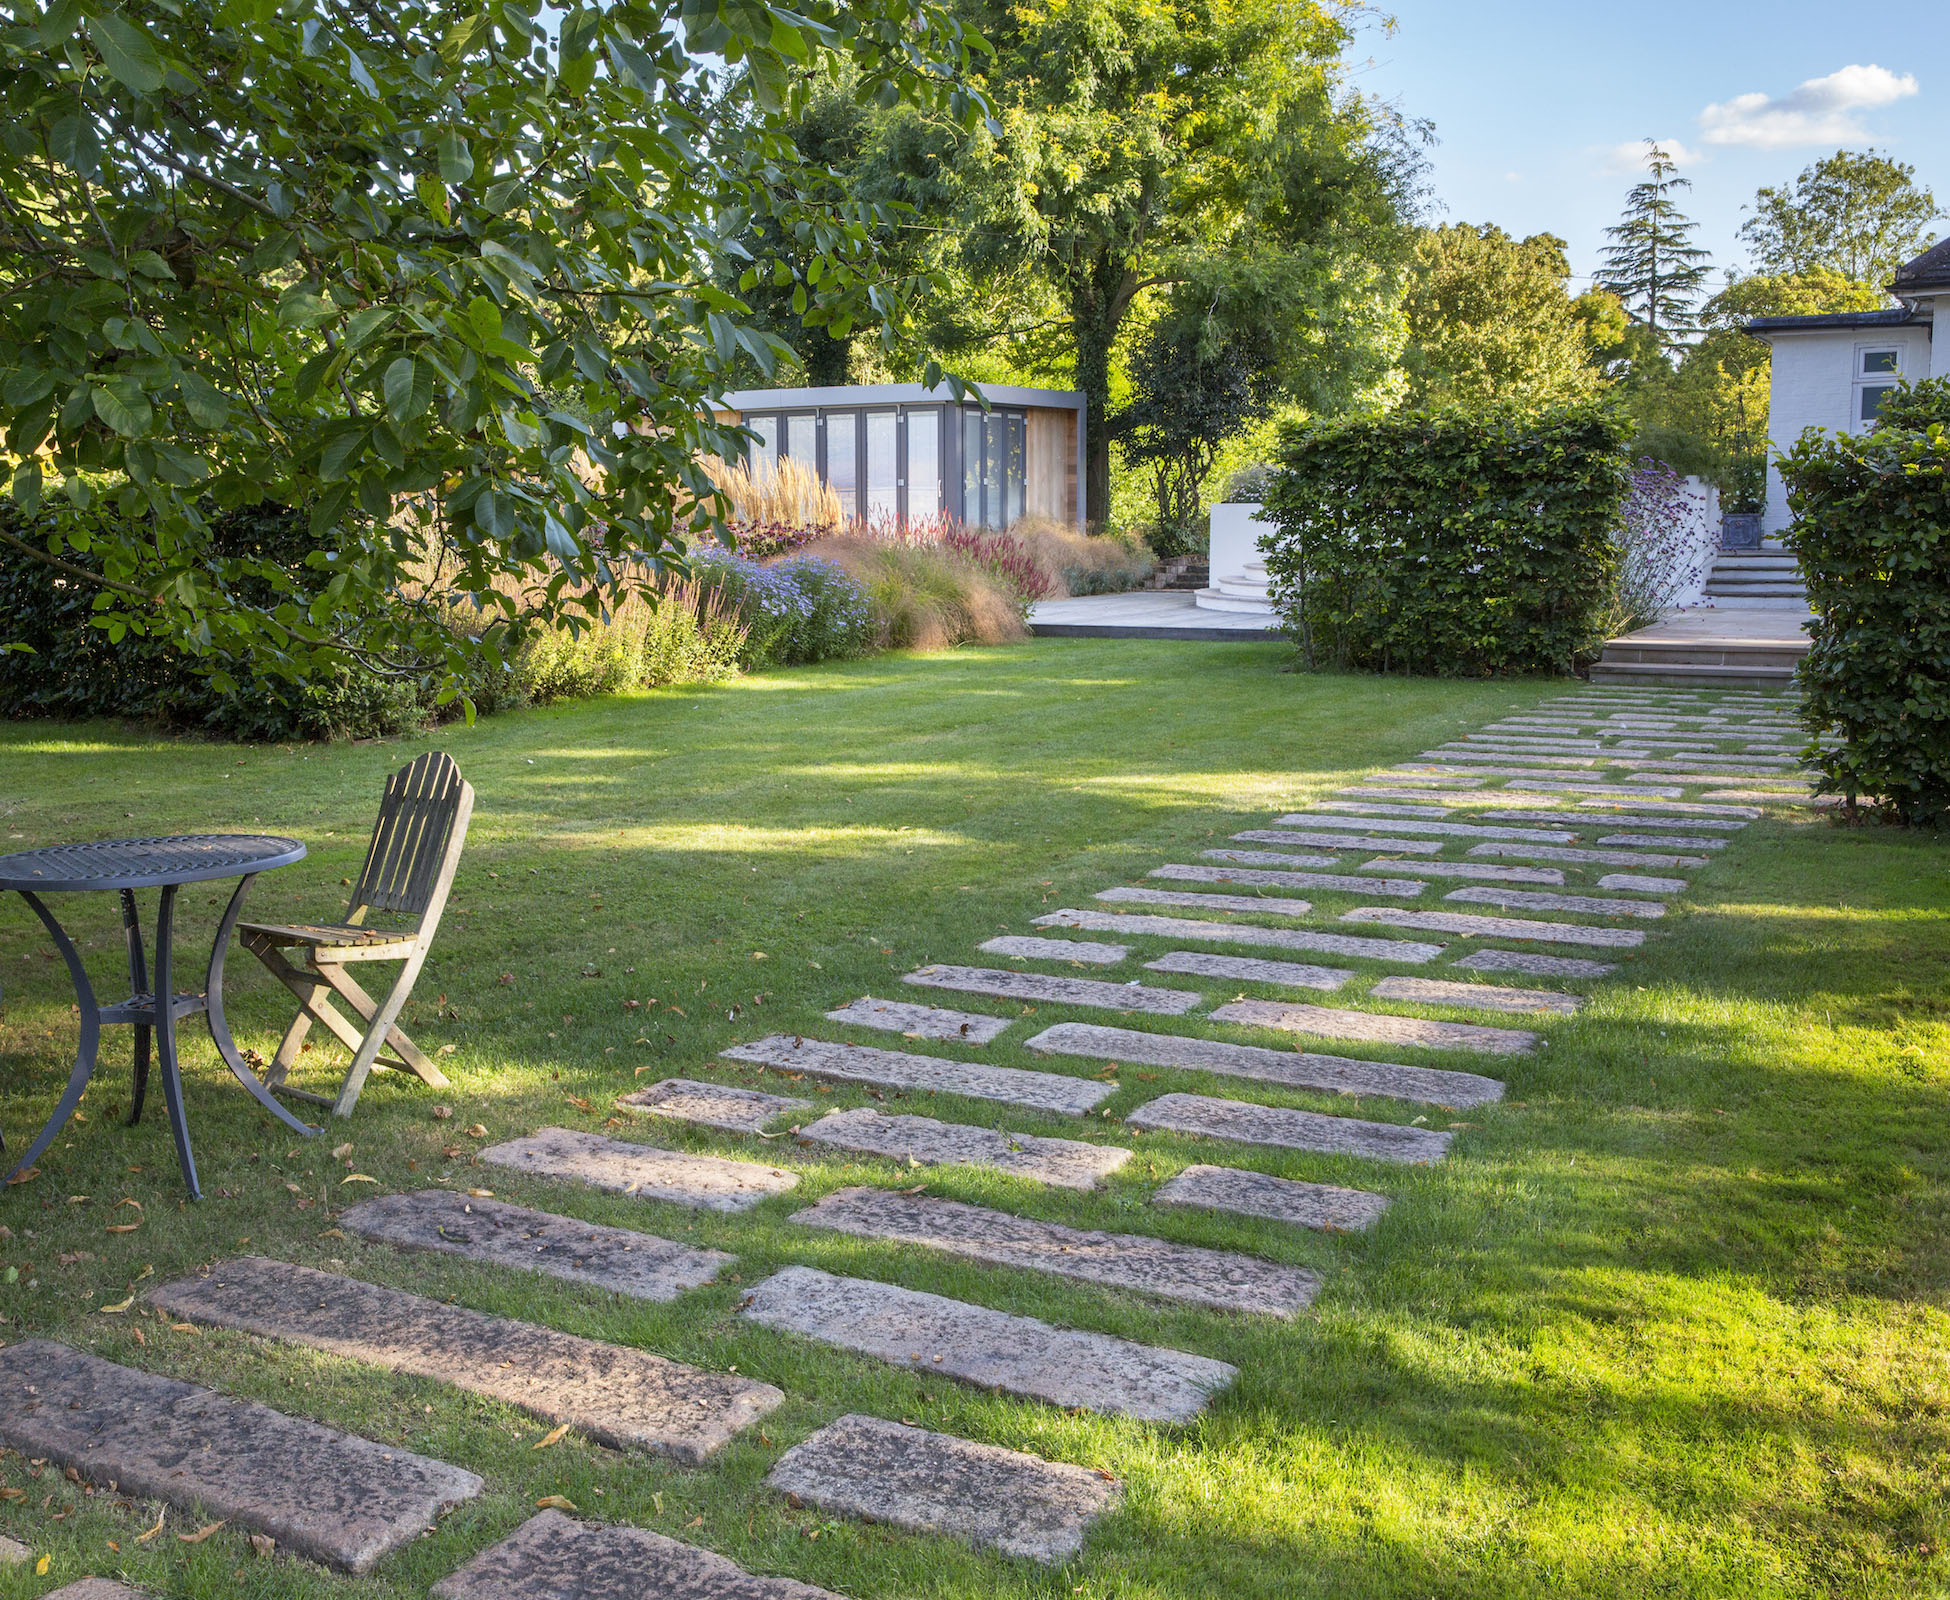 The dynamic path made of granite kerbstones takes you all the way to the hardwood deck, along some big herbaceous borders and tall beech hedges. A table and chairs are sitting on the lawn, under the old existing walnut tree.